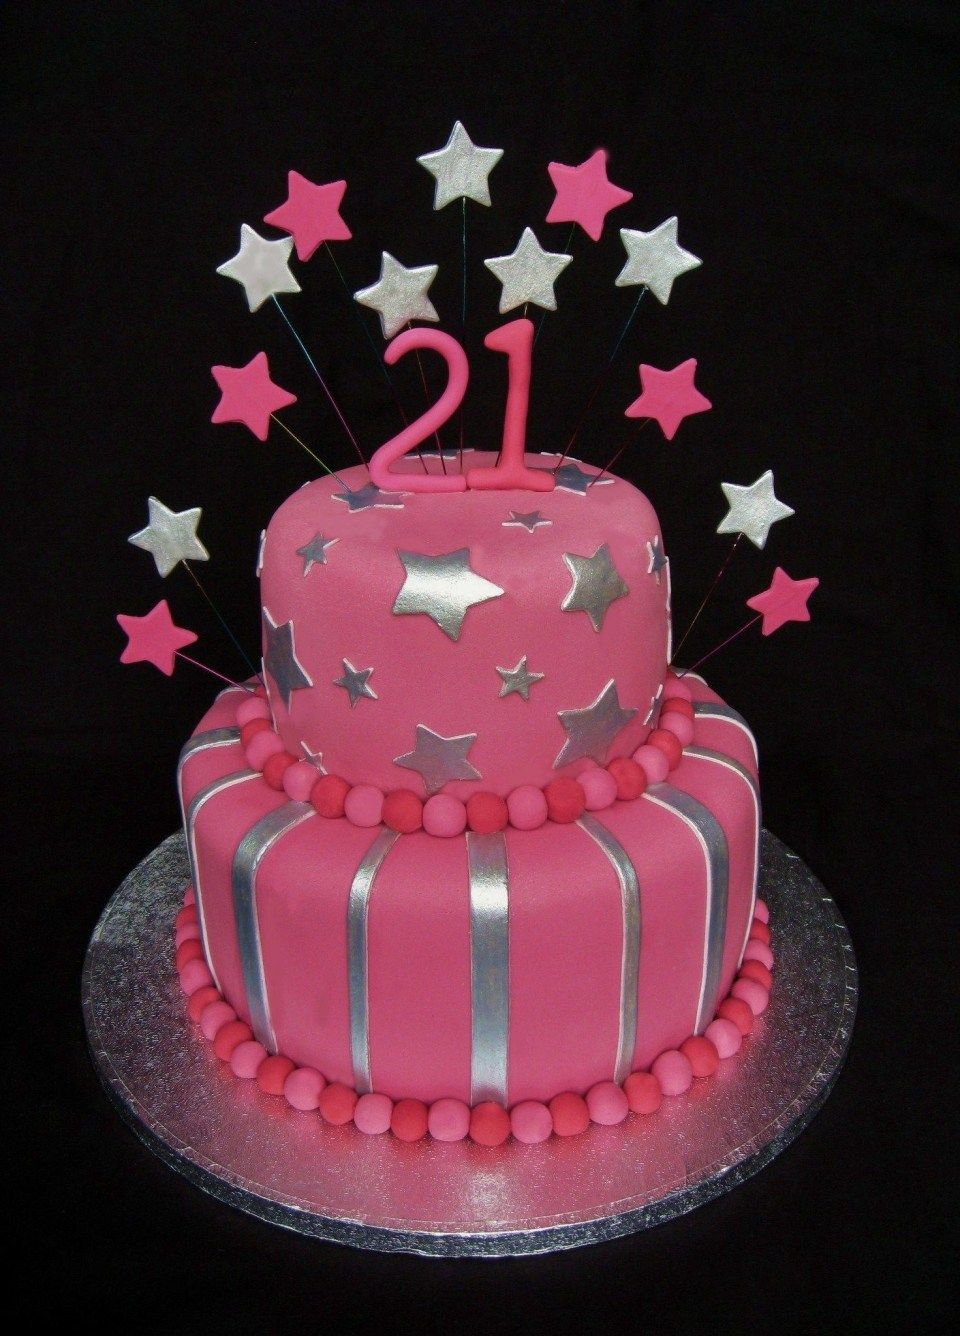 Pin On Cake And Cupcakes